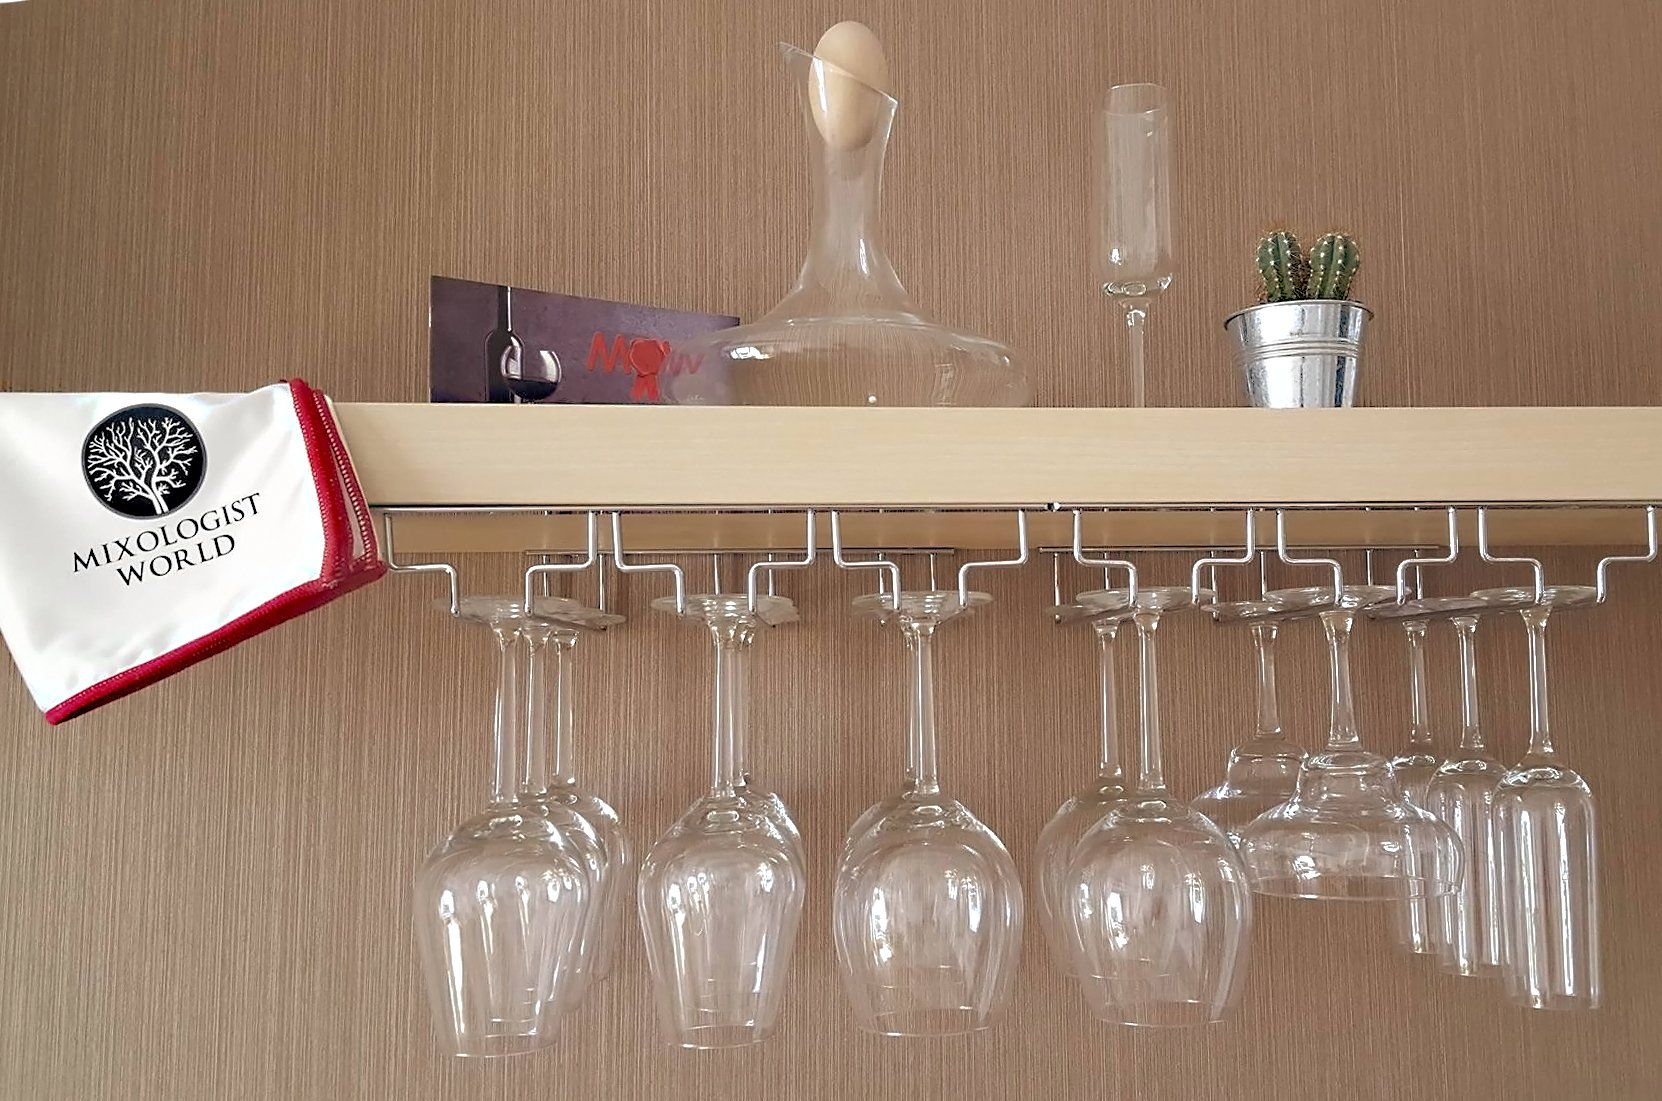 Wine Gl Rack Under Cabinet Storage Hanging Holder With Polishing Cloth